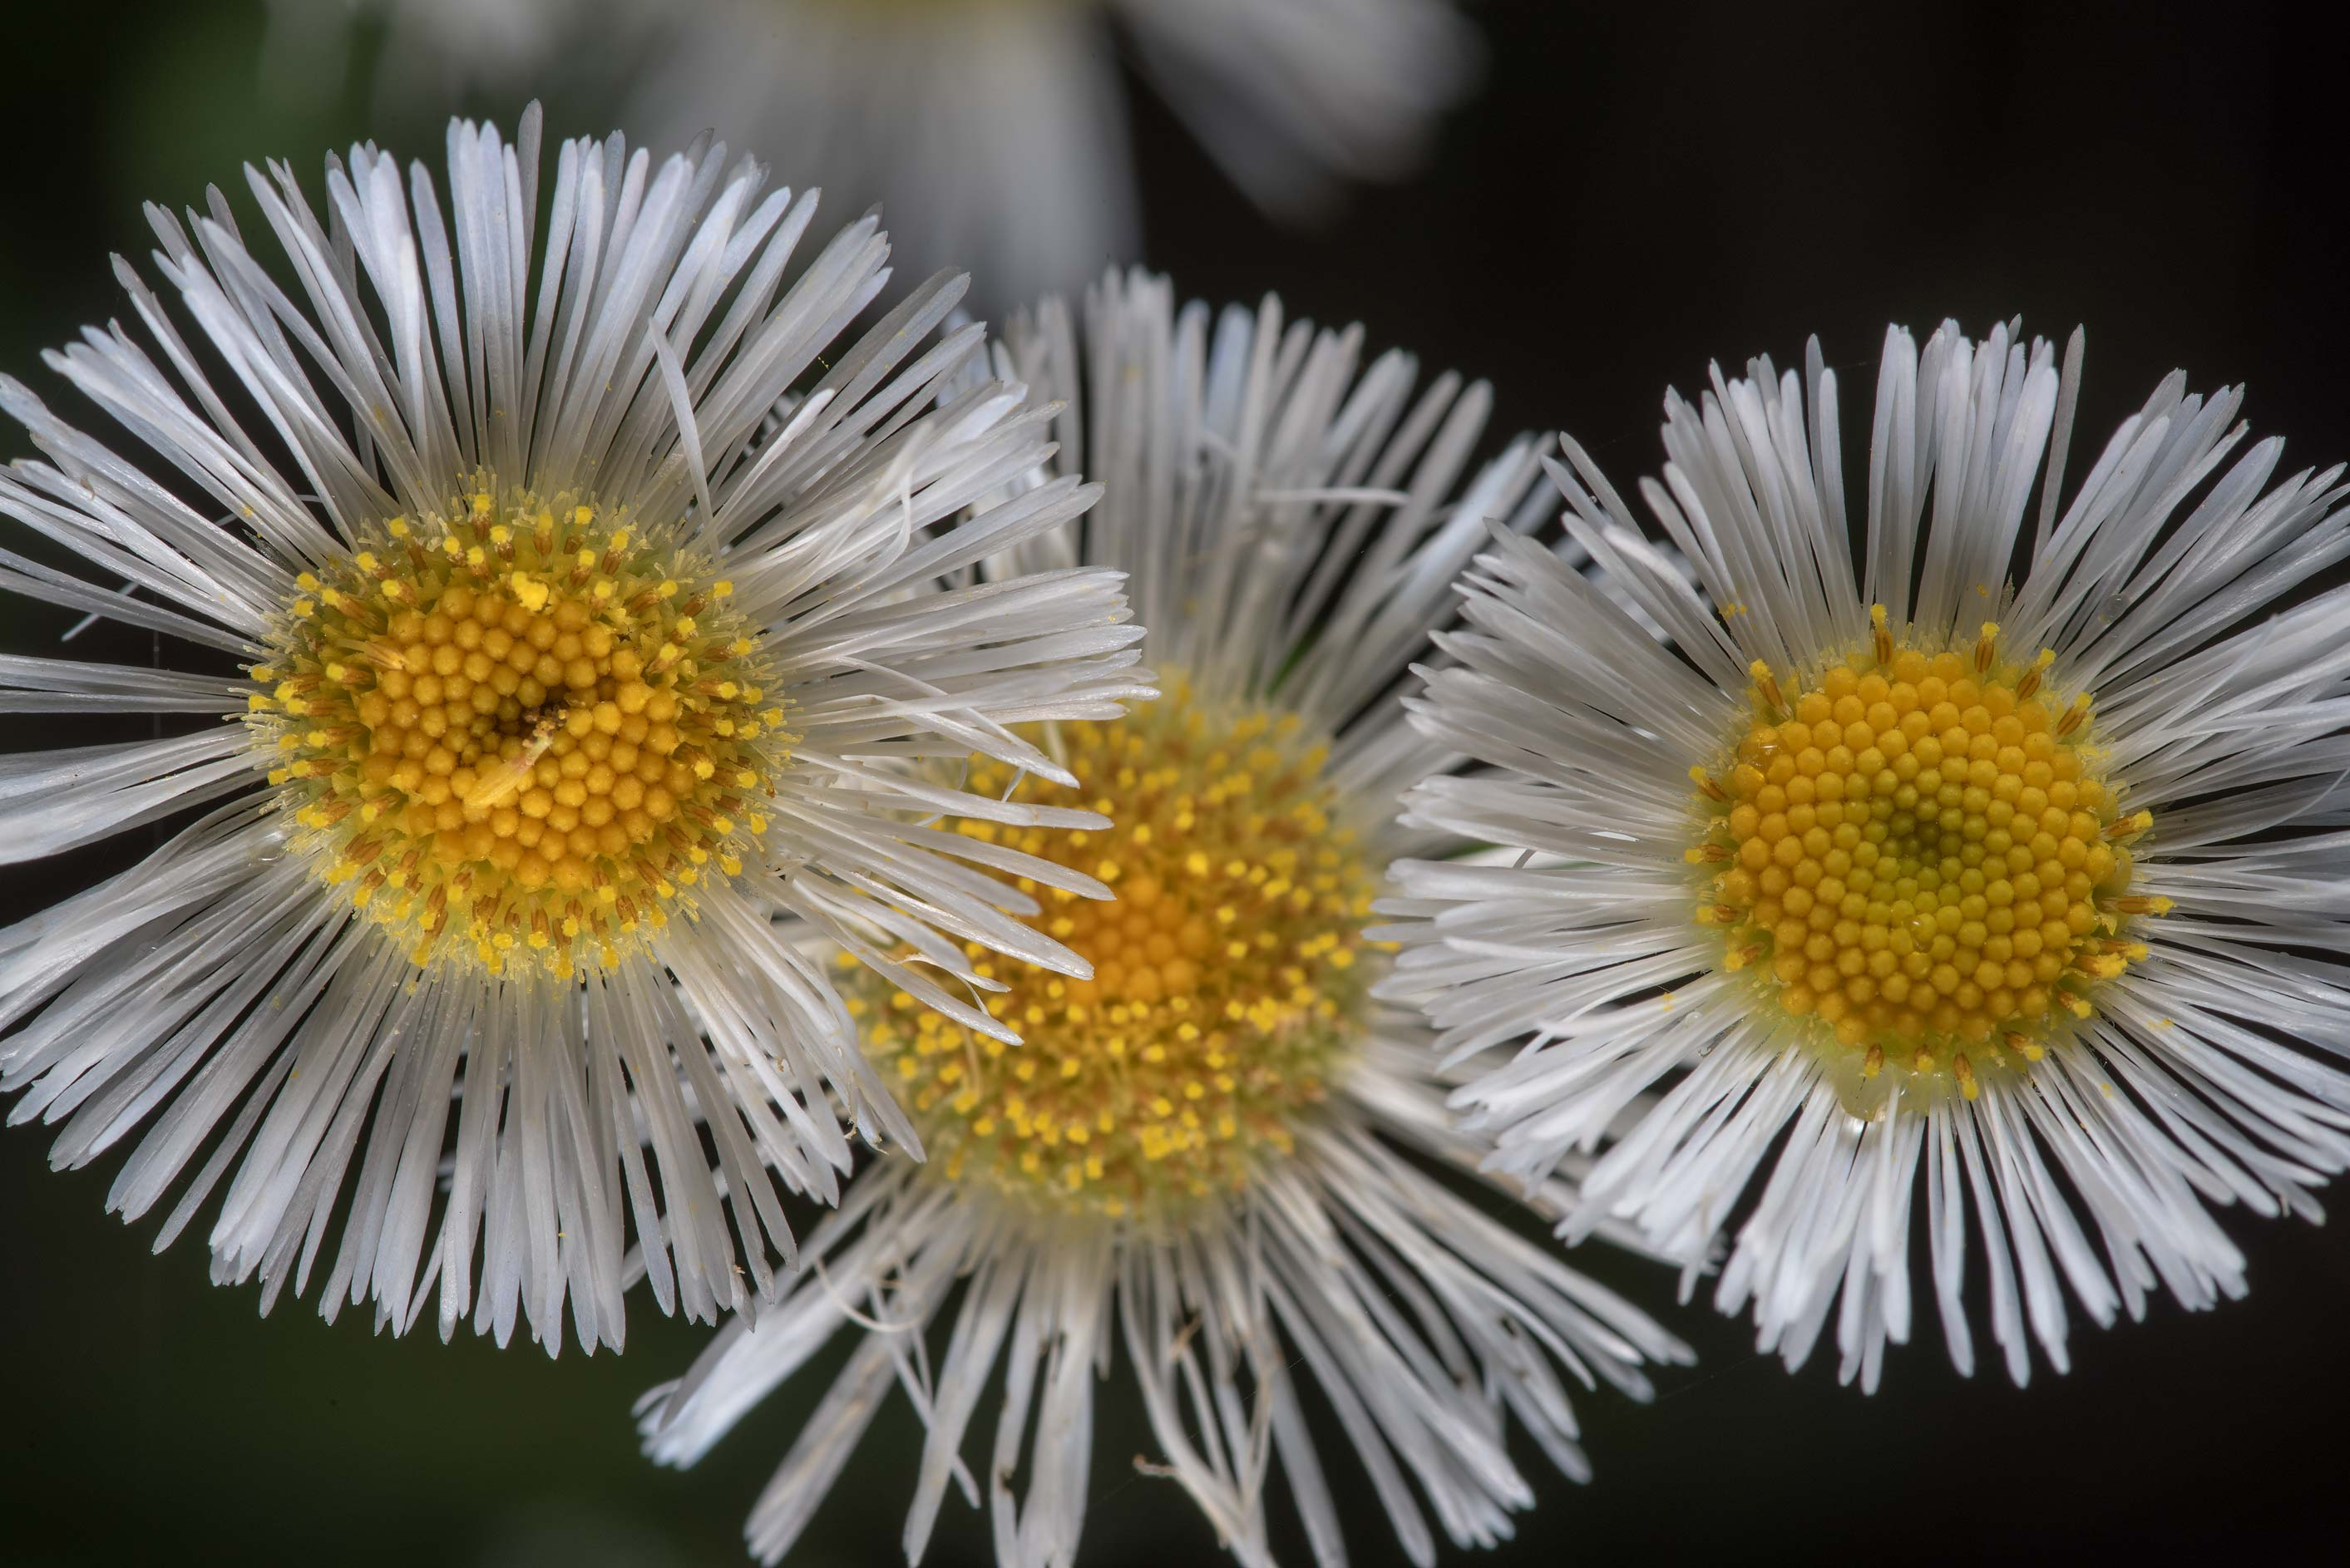 Fleaban daisy (Erigeron) on Caney Creek Trail...National Forest near Huntsville. Texas